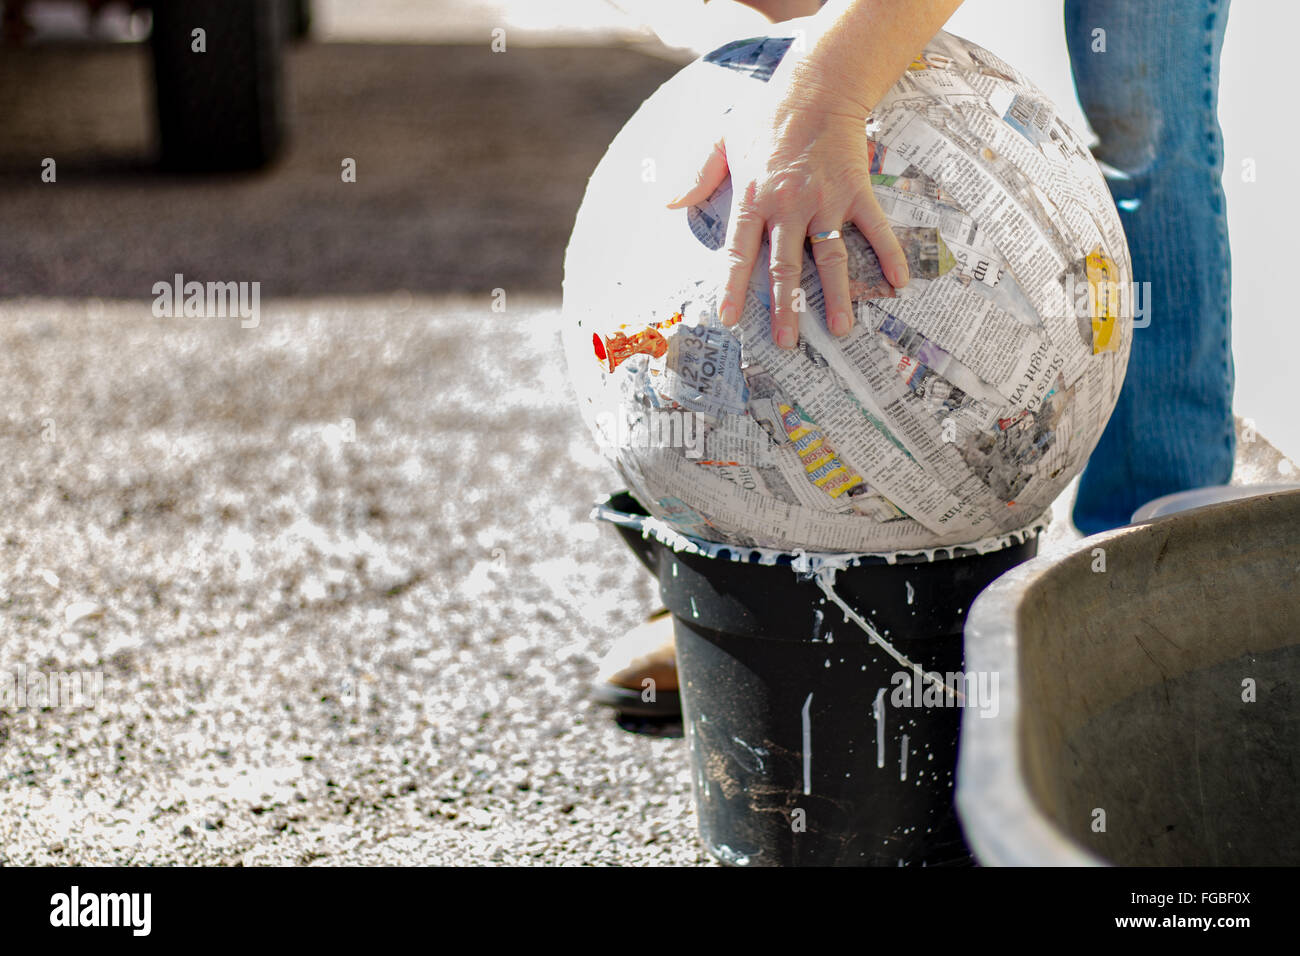 Cropped Image Of Hand Touching Papier Mache Ball On Bucket - Stock Image